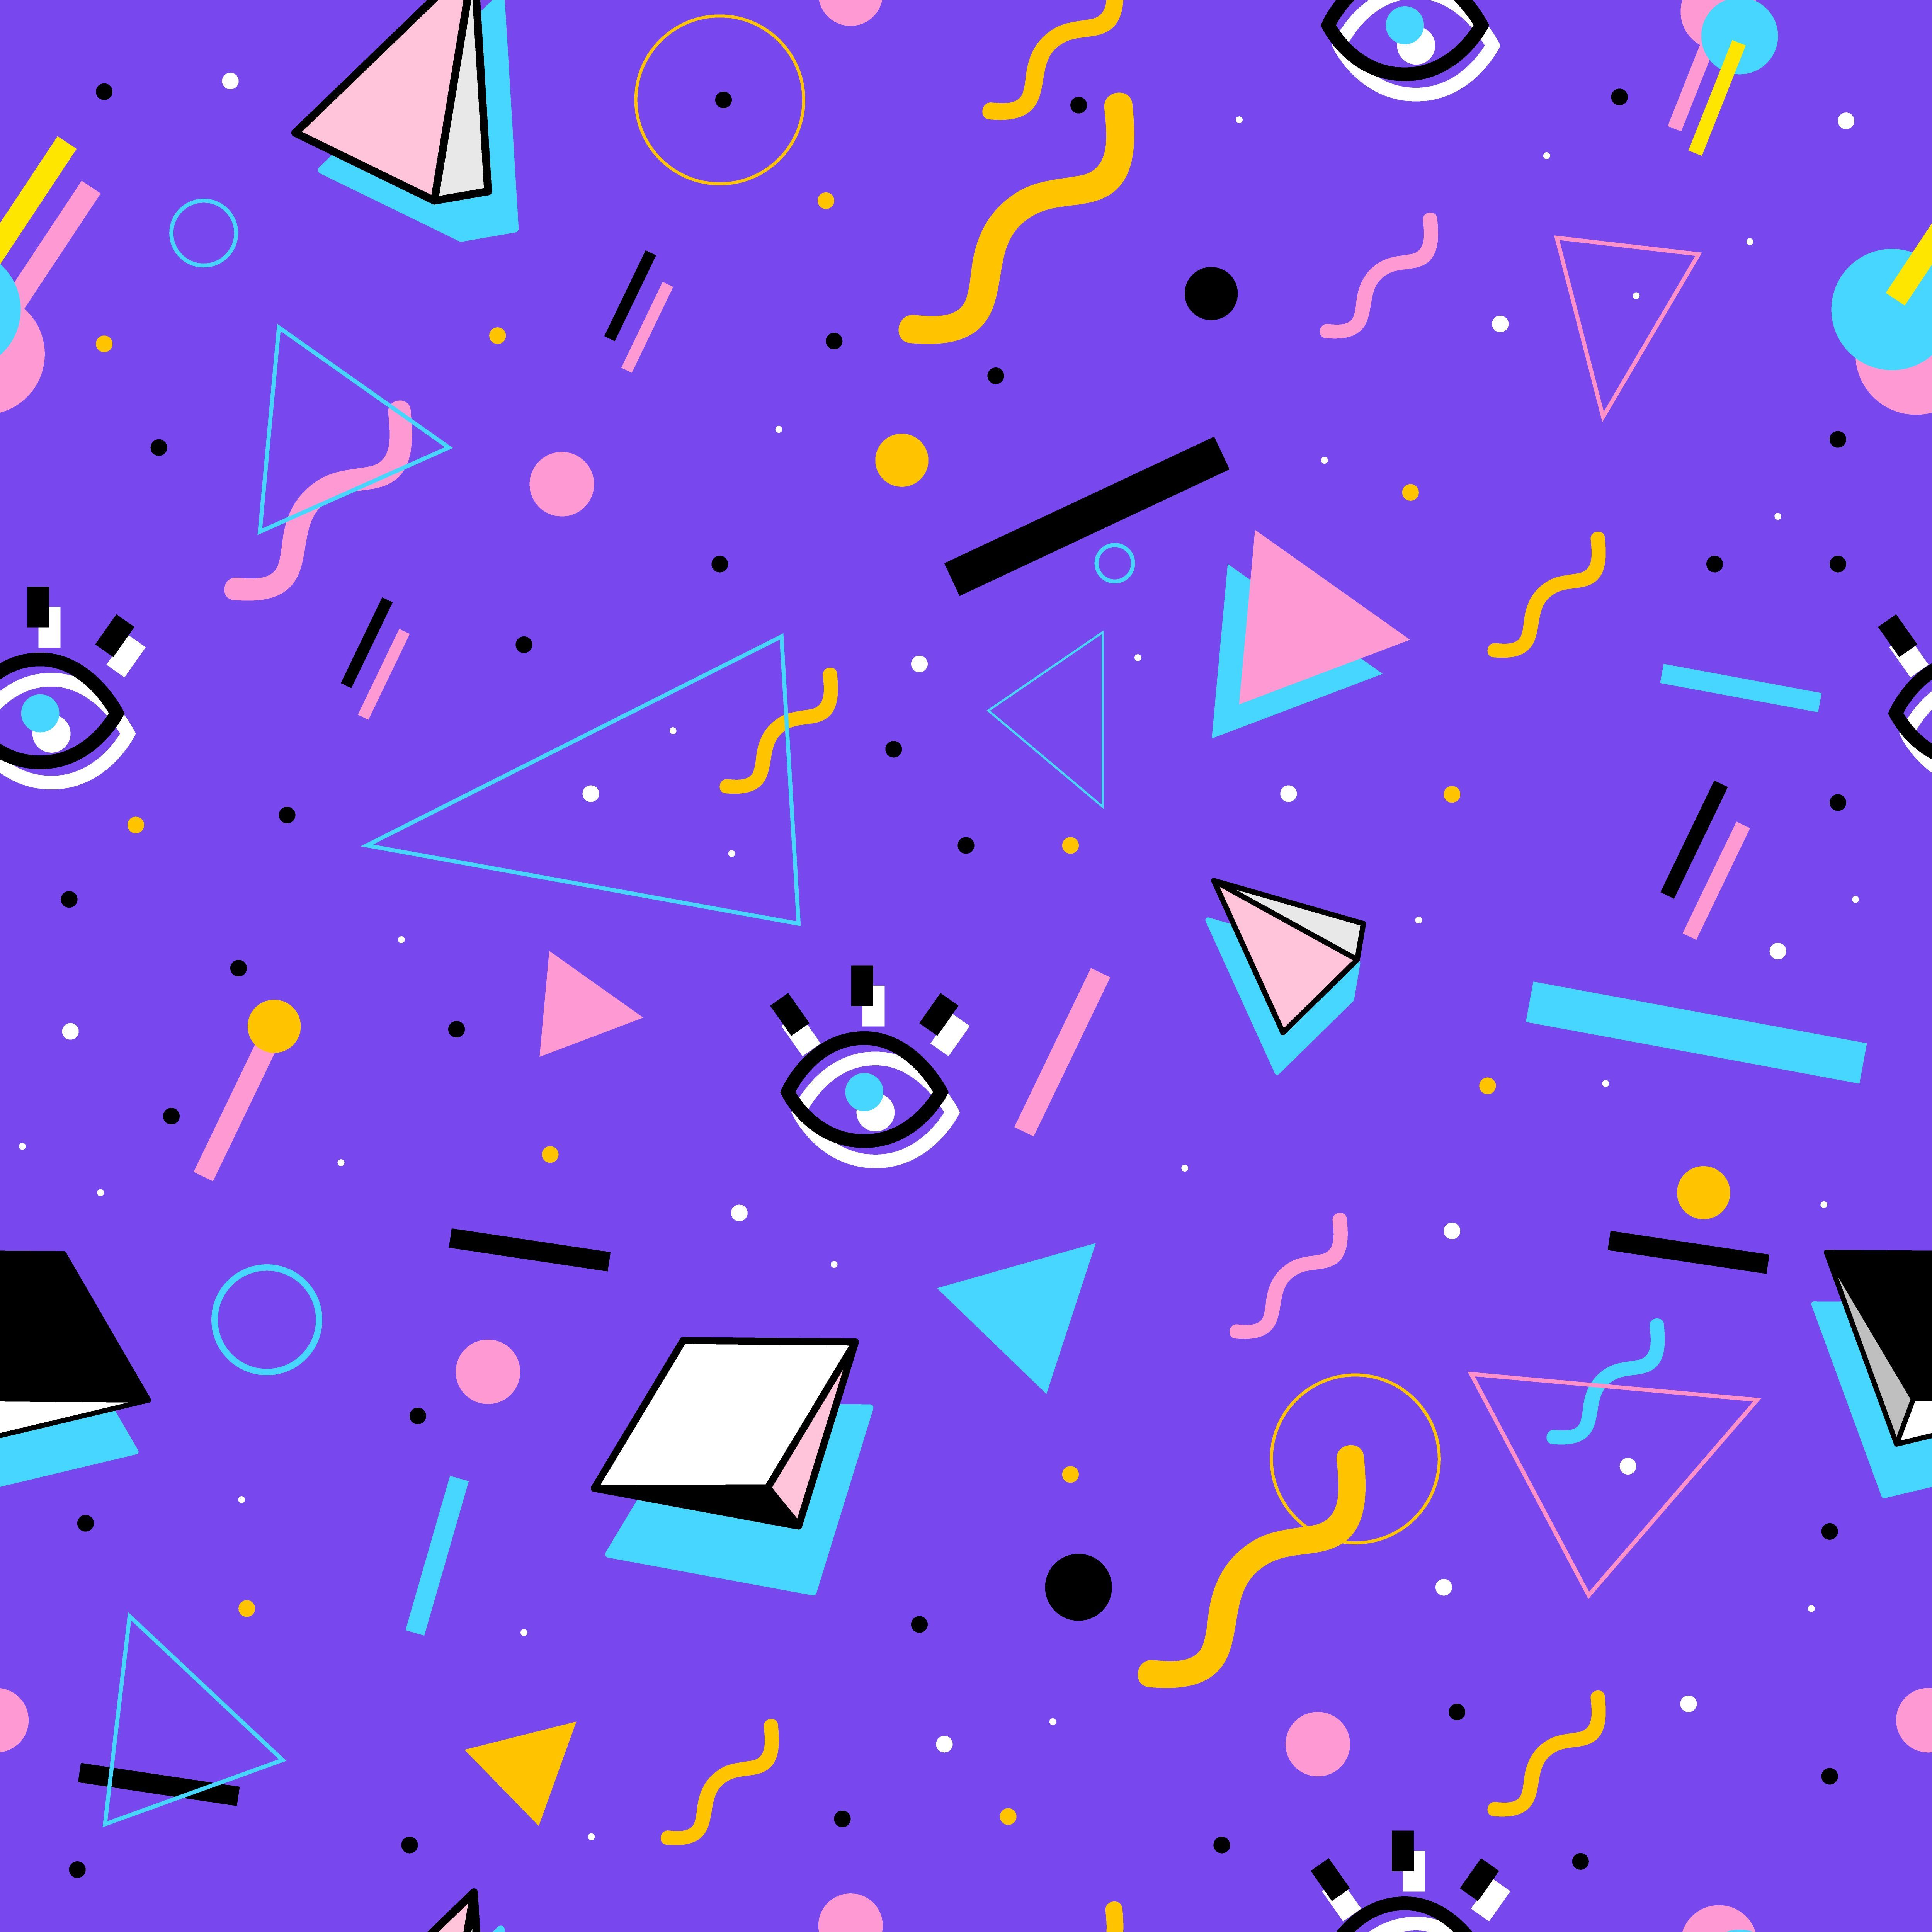 80s Shapes Wallpapers Top Free 80s Shapes Backgrounds